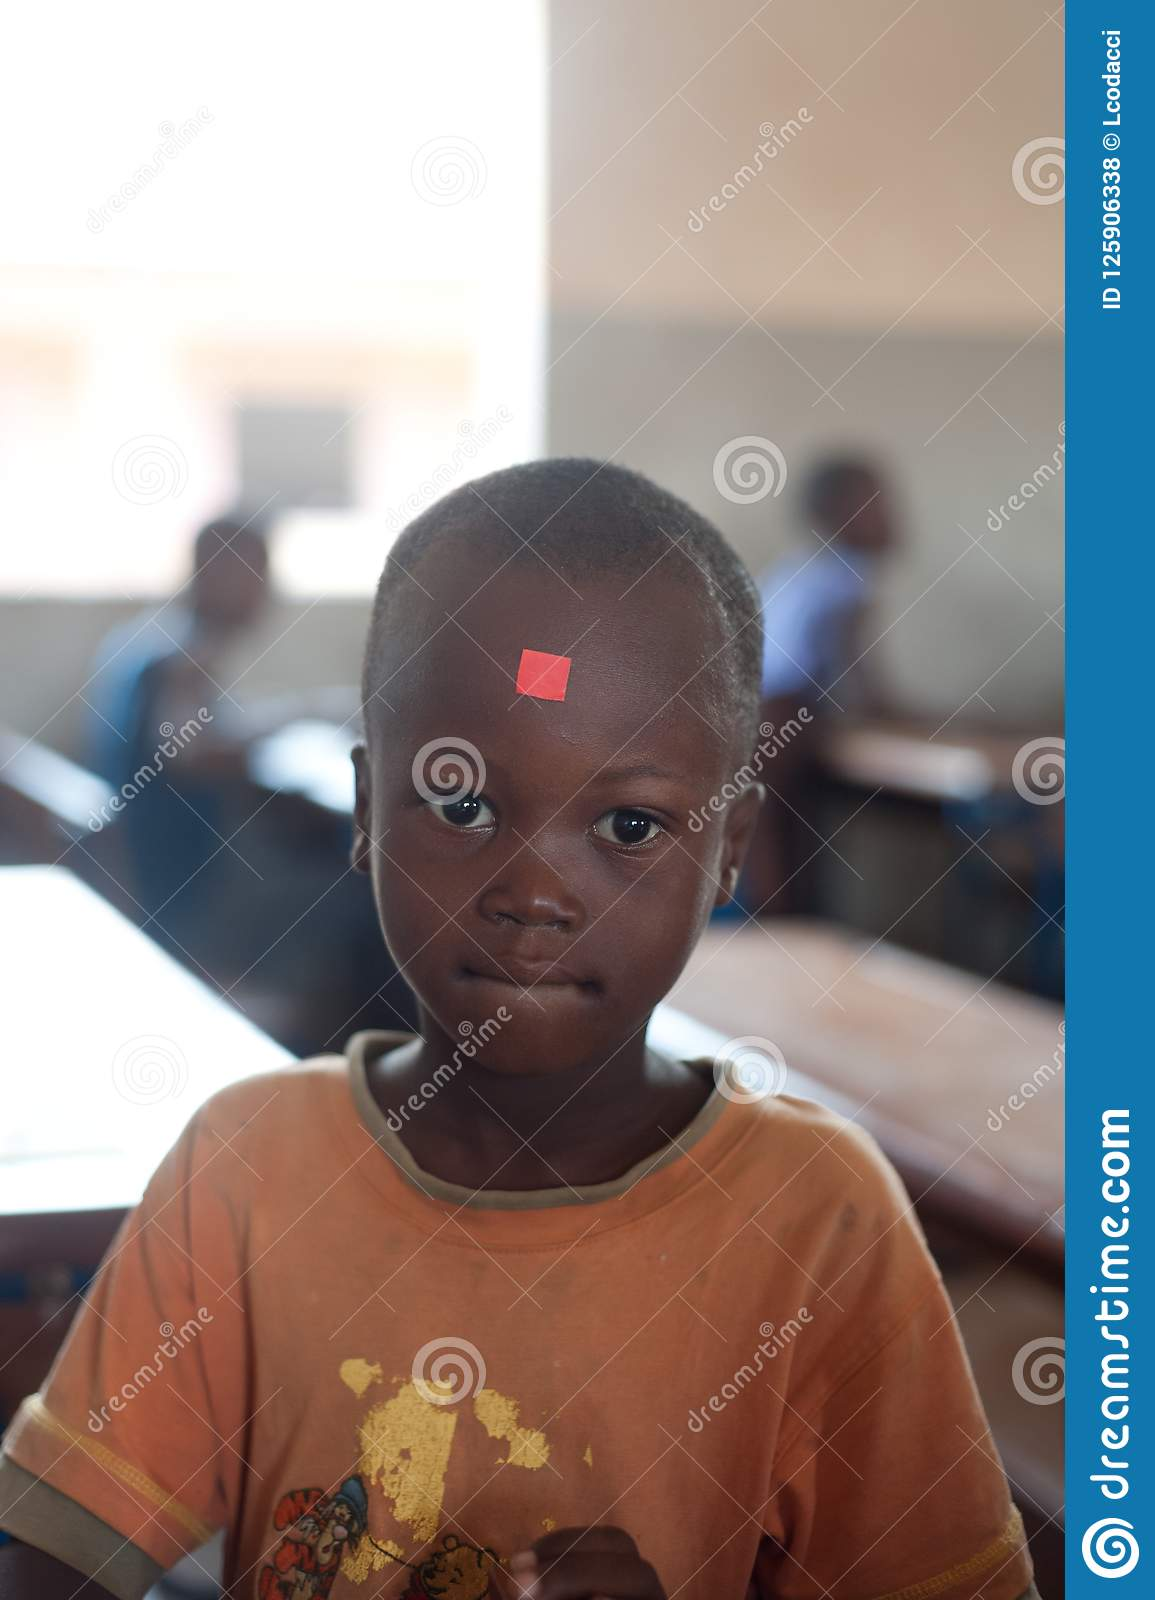 Mali Closeup Portrait Of A Male Black Student Editorial Stock Photo Image Of Countries Junior 125906338